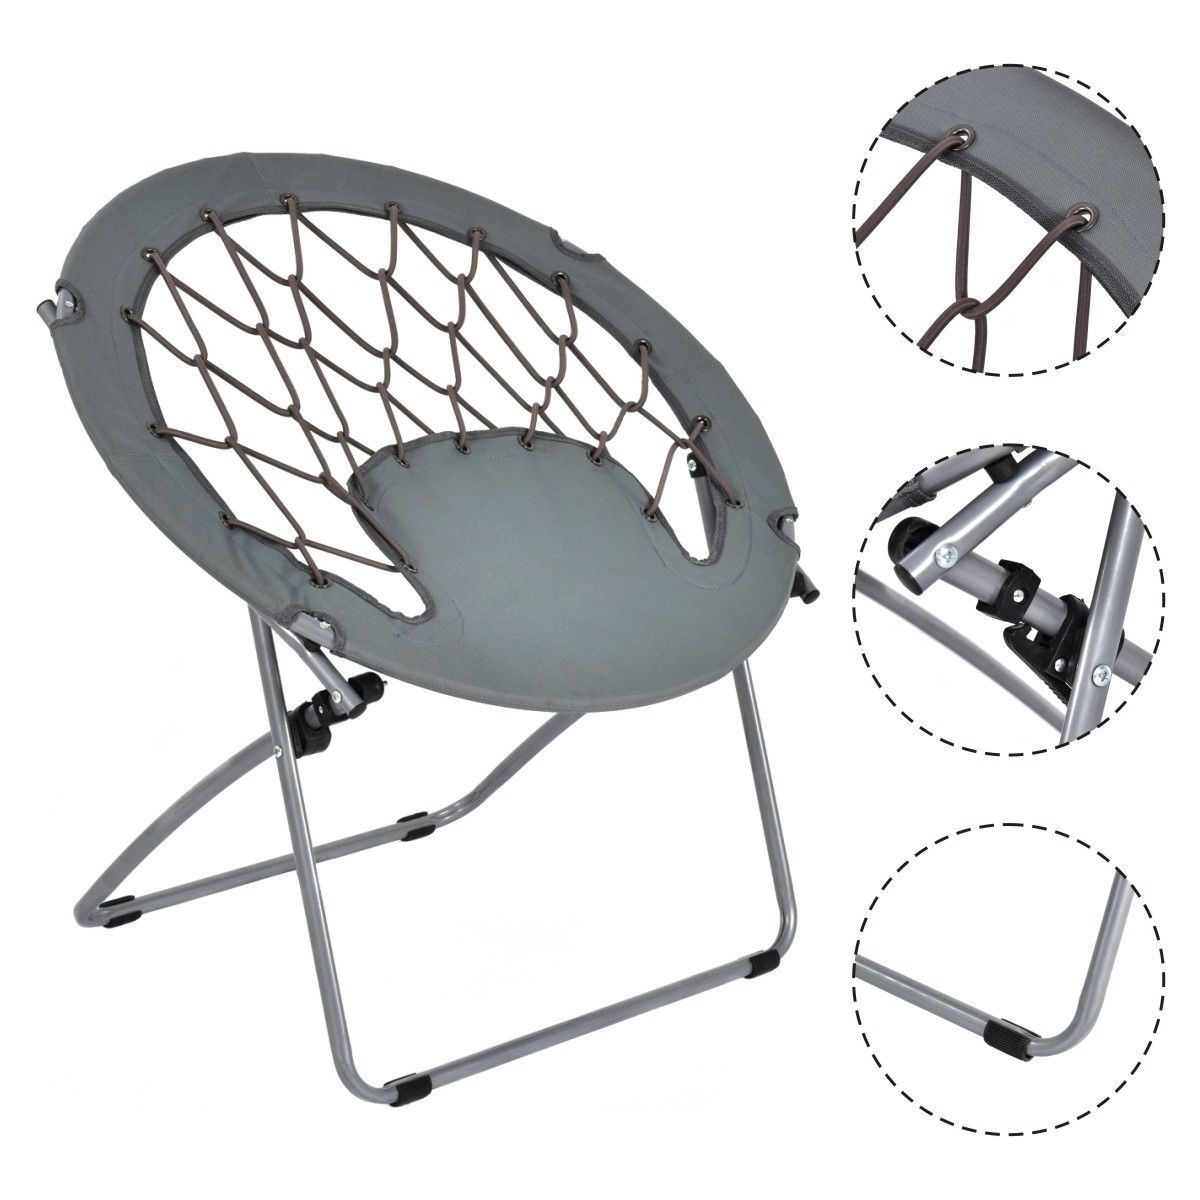 Goplus Folding Round Bungee Chair Steel Frame Outdoor Camping Hiking Garden Patio